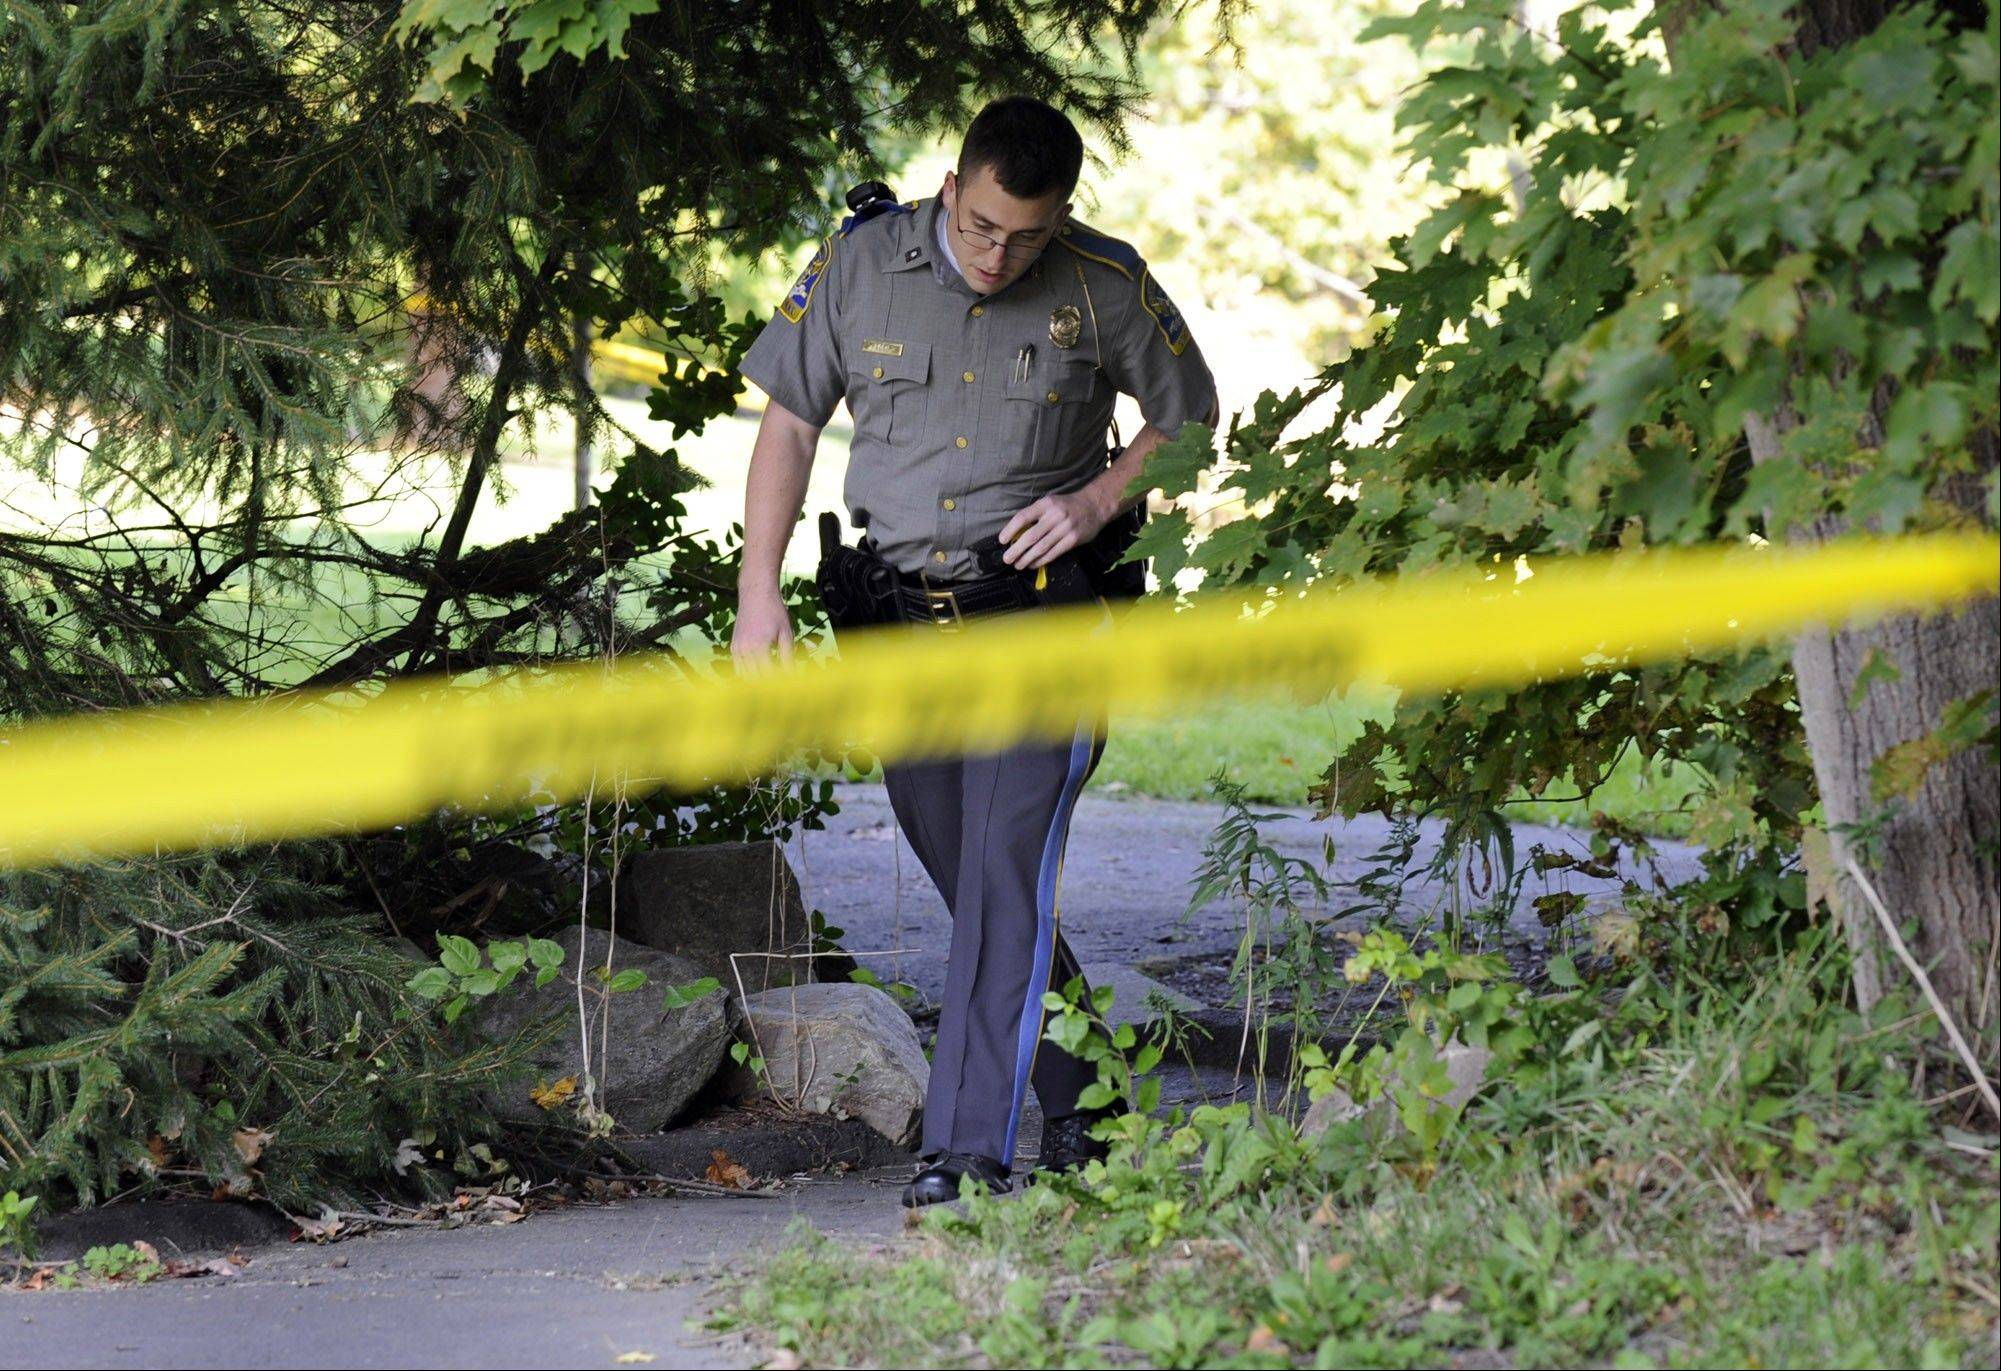 State Trooper Matt Losh emerges from the backyard of a home on Meeting House Hill Circle in New Fairfield, Conn., where a fatal shooting took place, Thursday, Sept. 27, 2012. A Connecticut man fatally shot a masked teenager in self-defense during what appeared to be an attempted burglary early Thursday morning, then discovered that he had killed his son, state police said. (